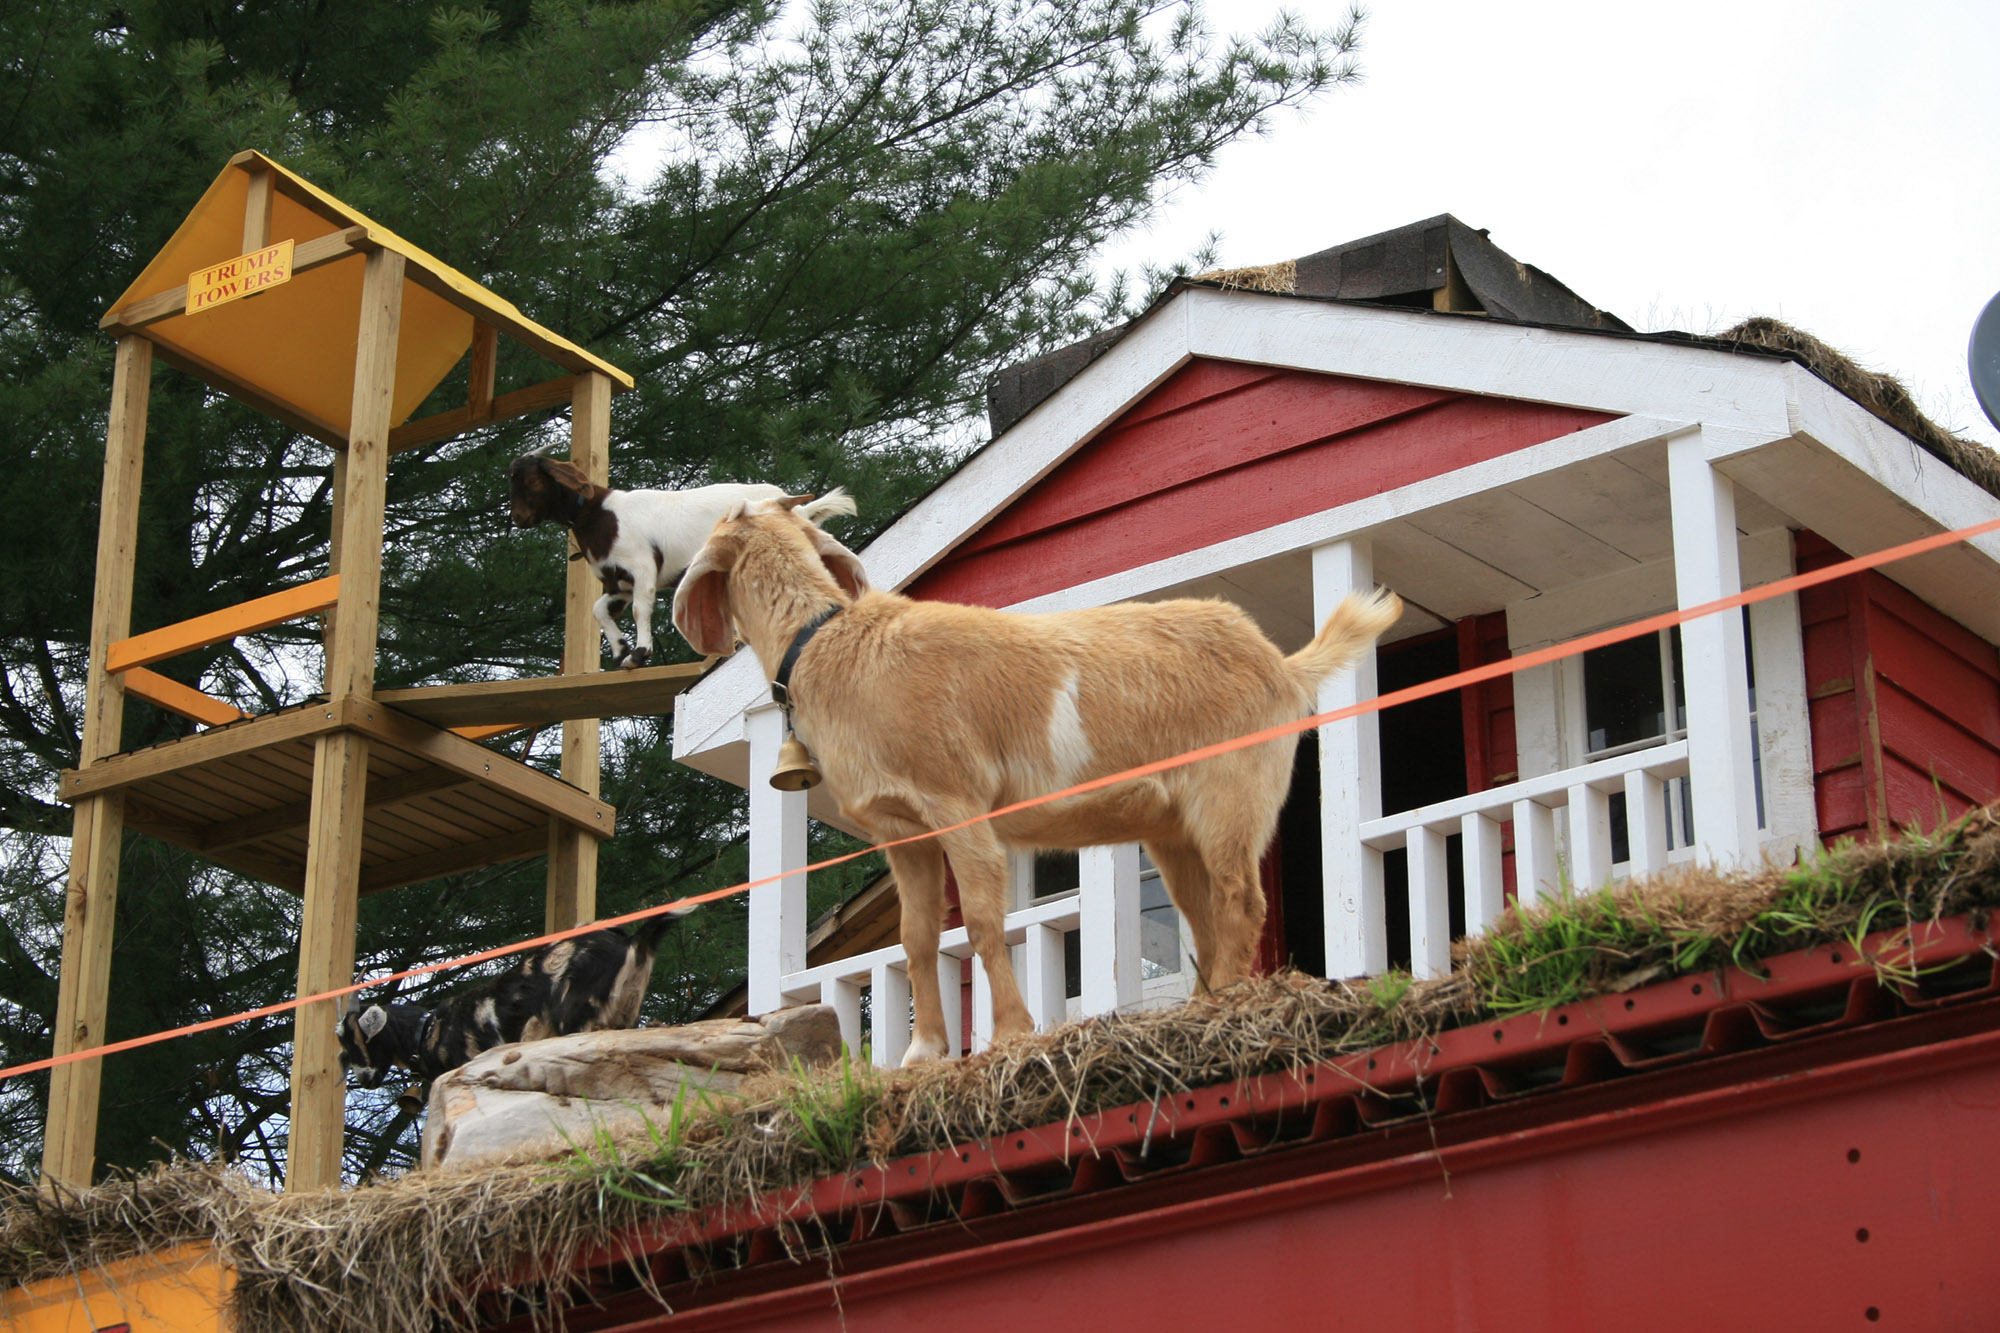 Goats on the Roof in Tiger, Georgia